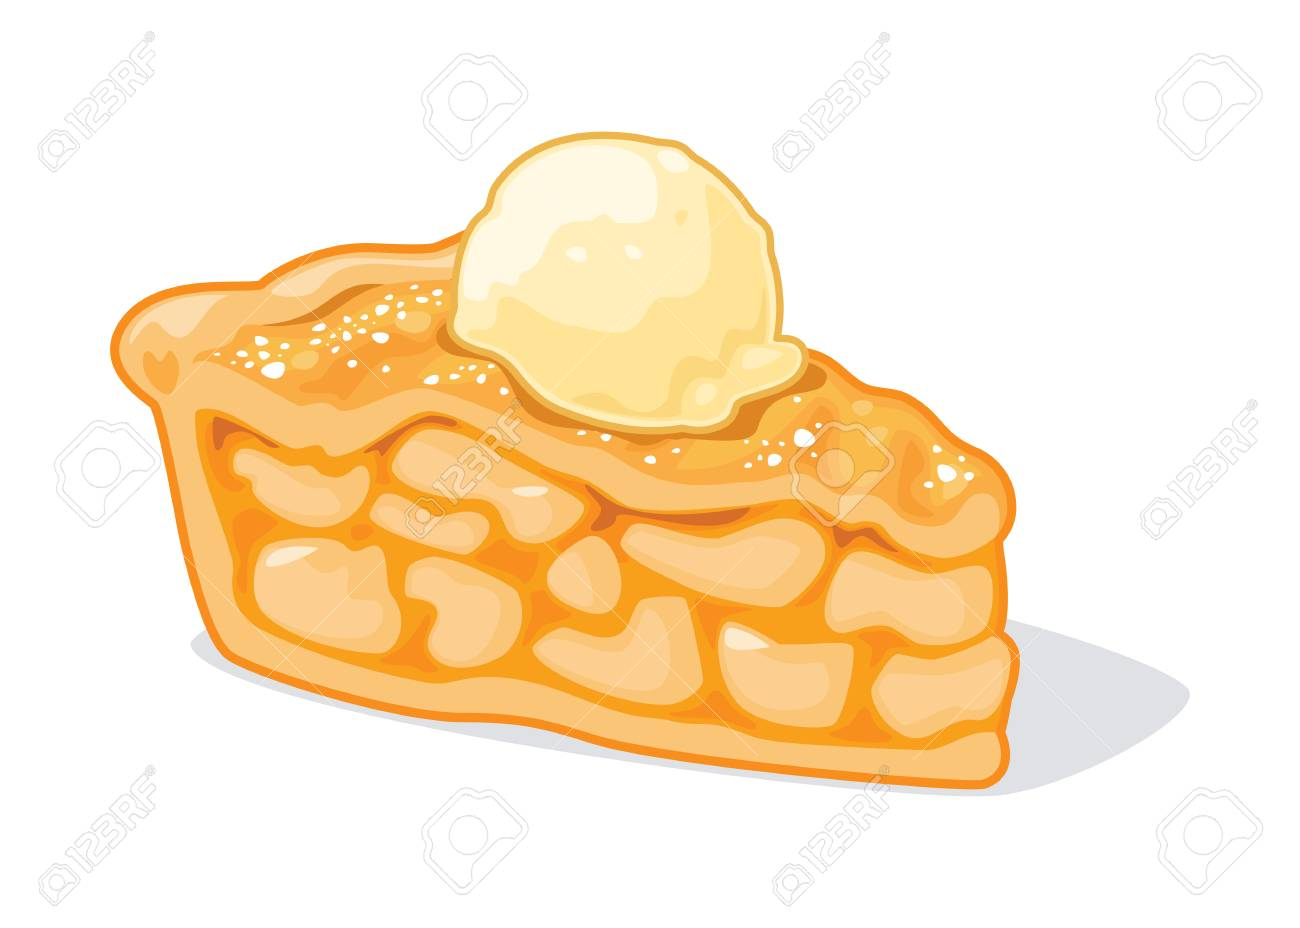 Image result for apple pie clipart